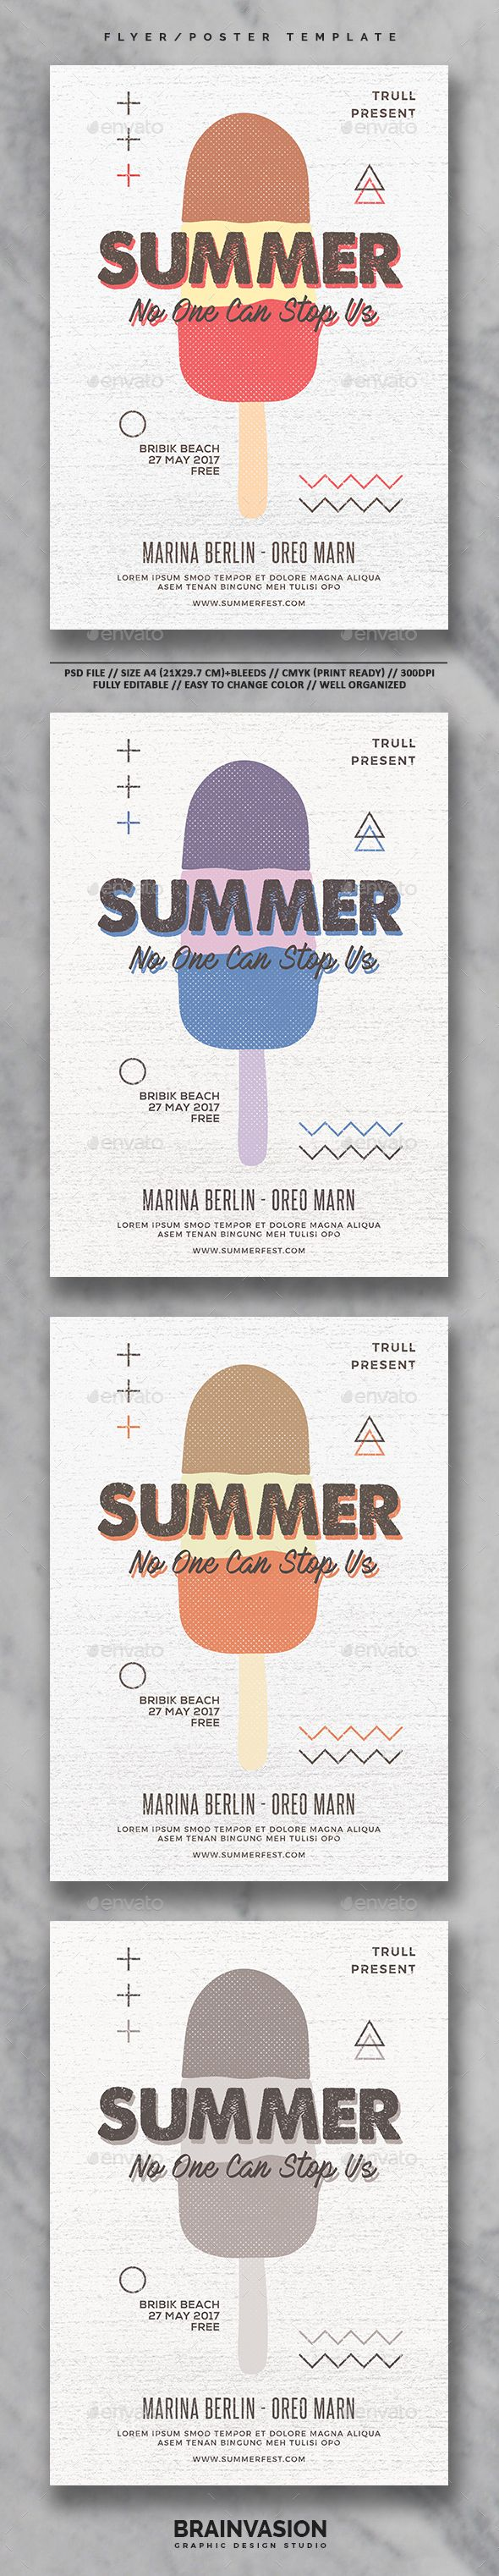 Poster design free download - Summer Flyer Poster Template Vol 01 Photoshop Psd Best Seller 8 3